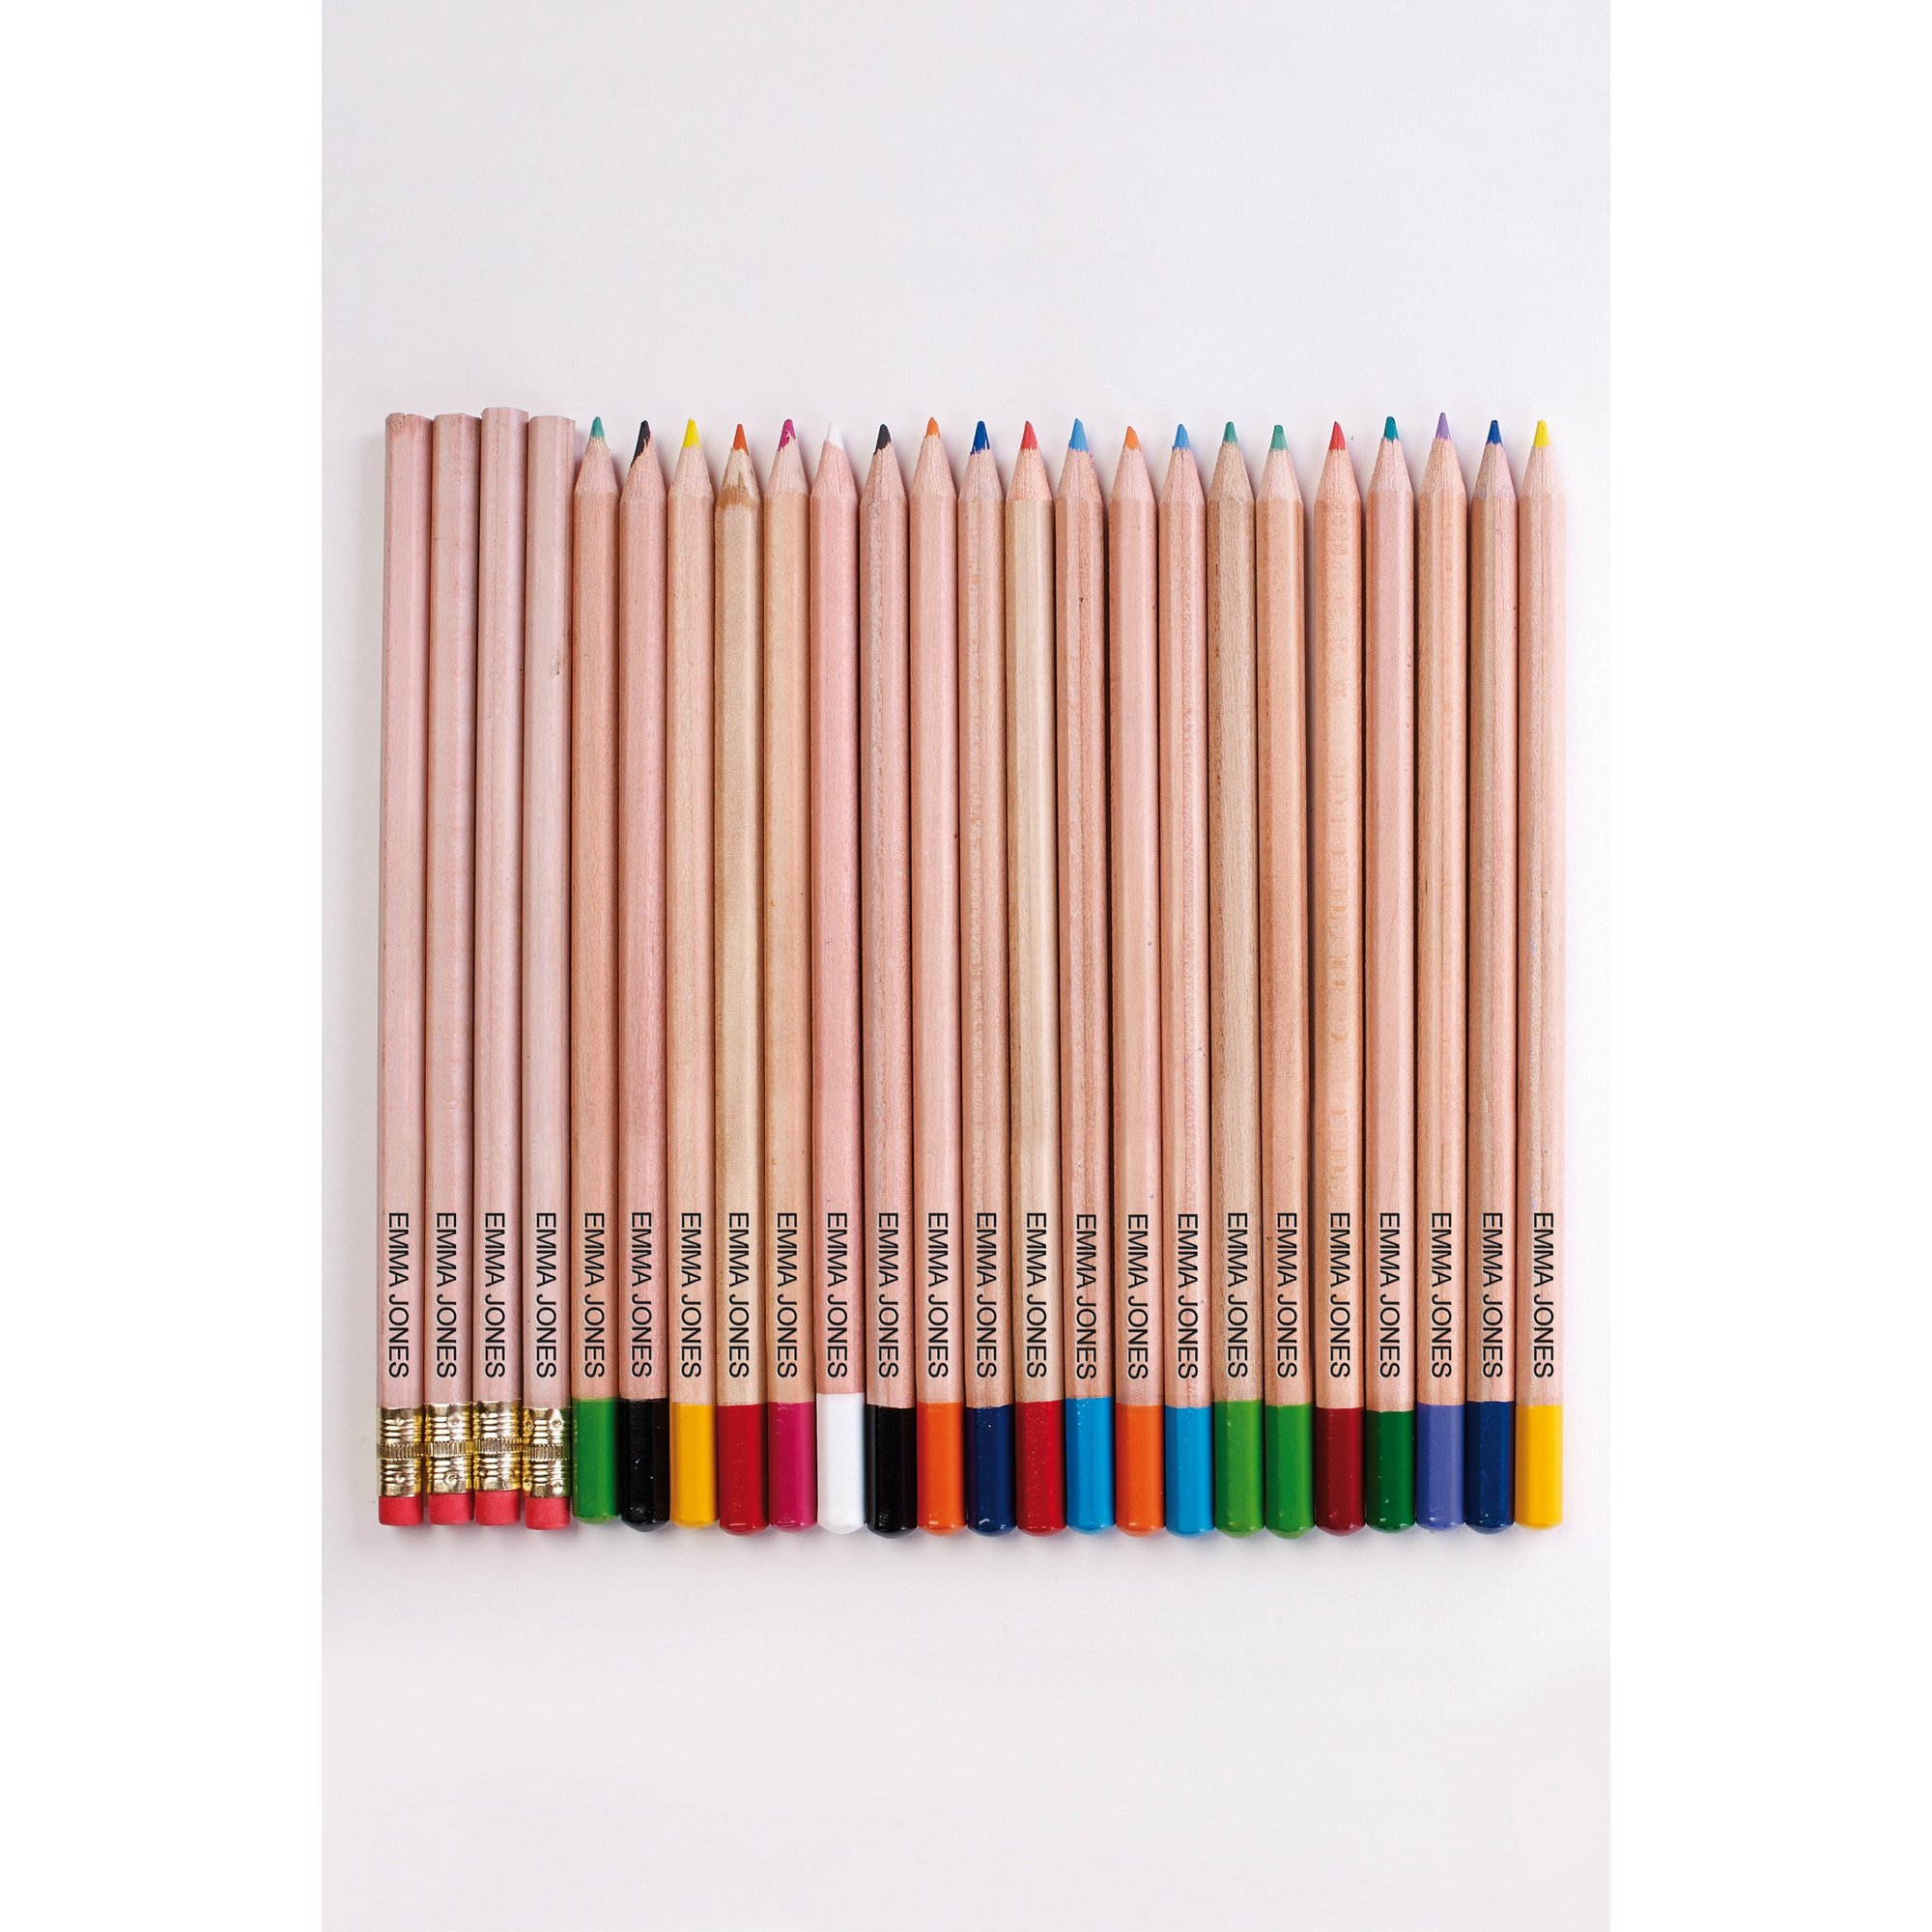 Image of Pack of Personalised Mixed Pencils